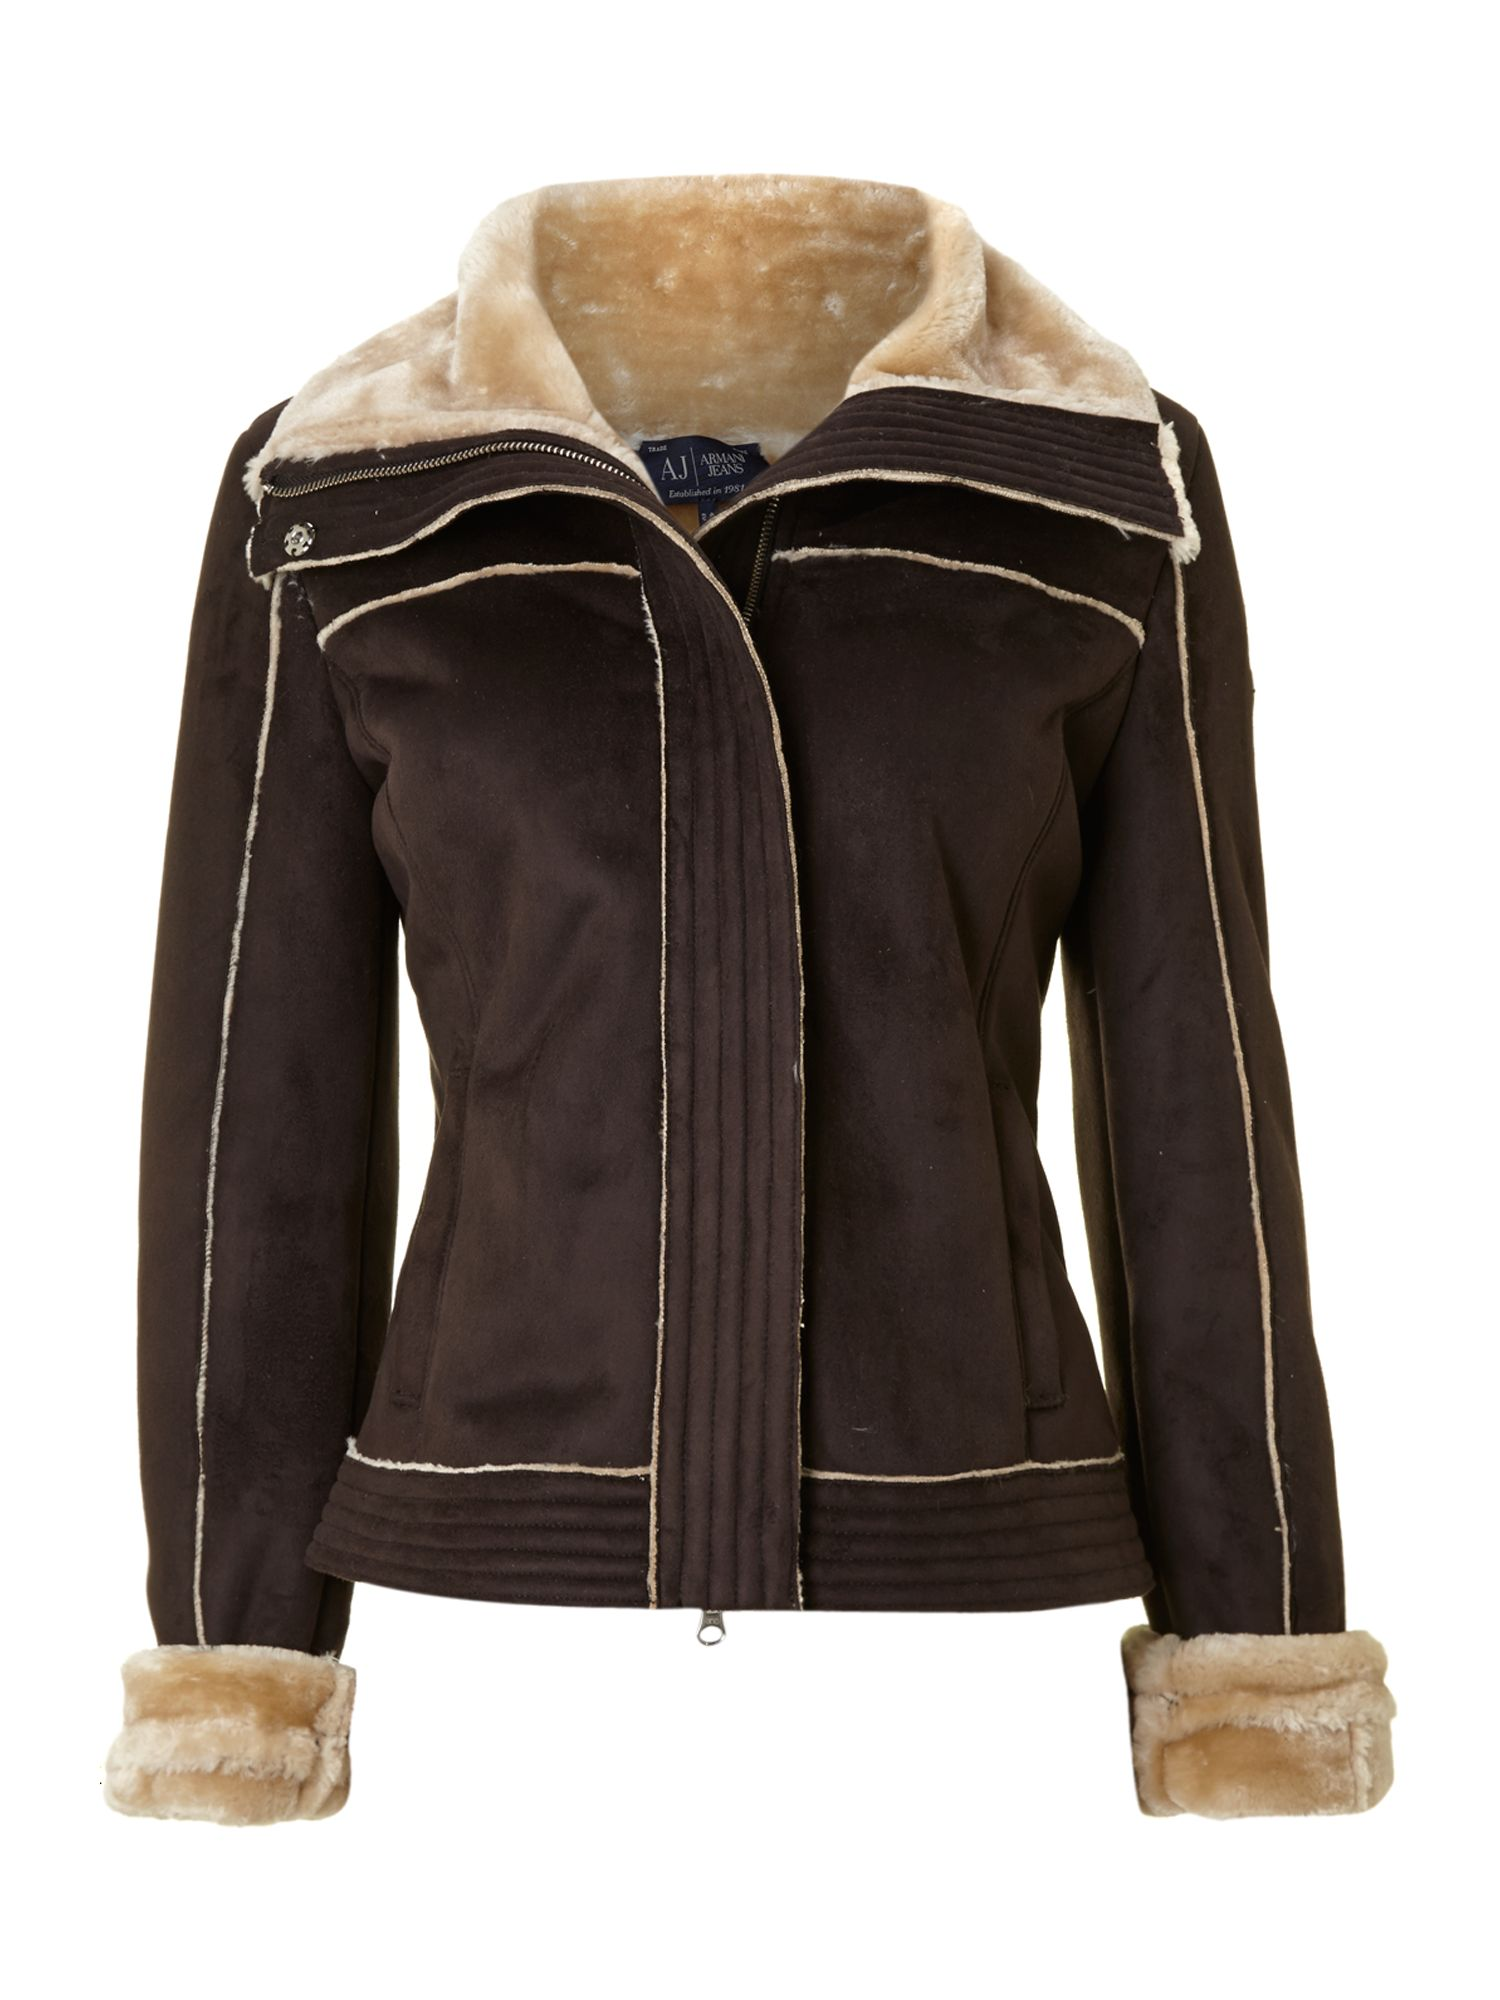 Shearling jacket with faux fur collar